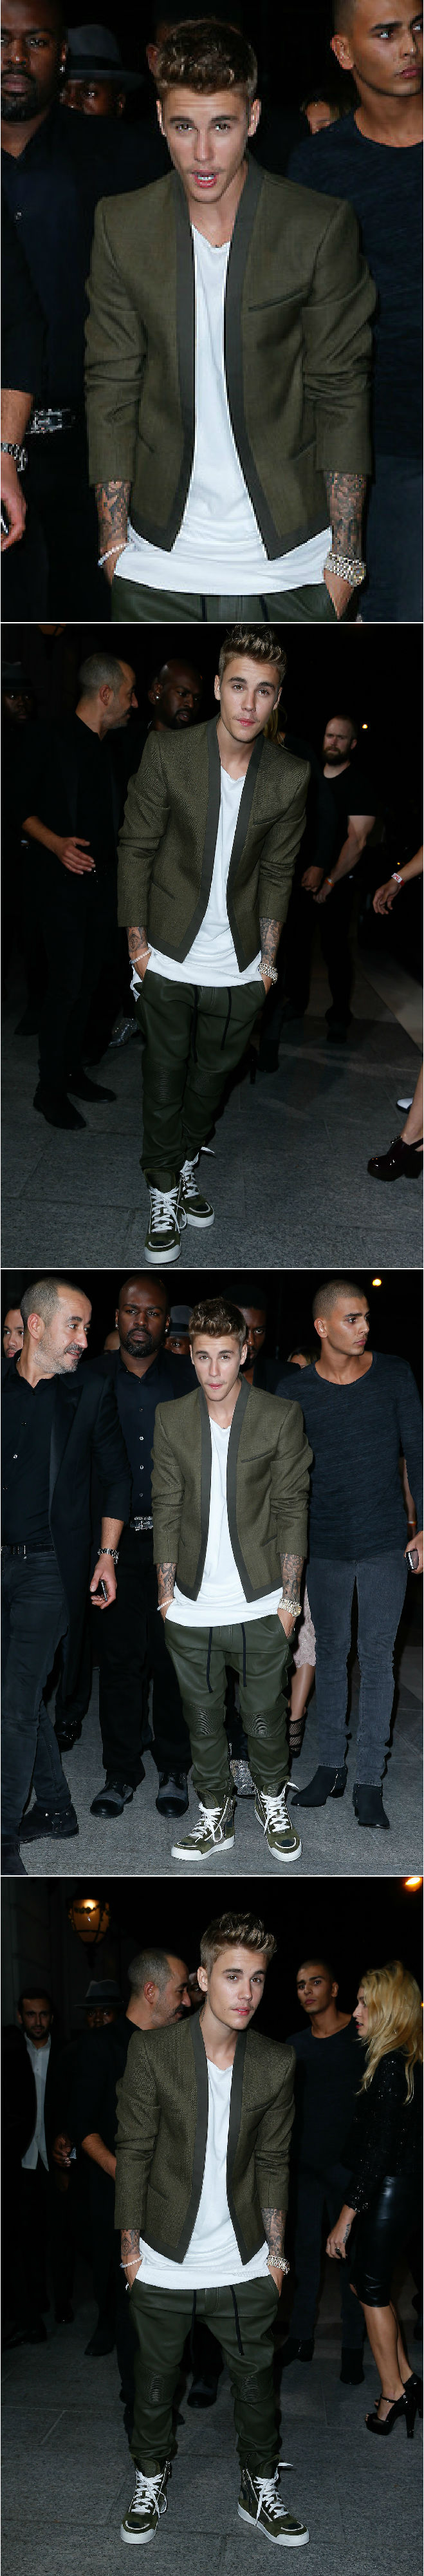 September 30: Justin attends the CR Fashion Book Party at The Peninsula in Paris, France.